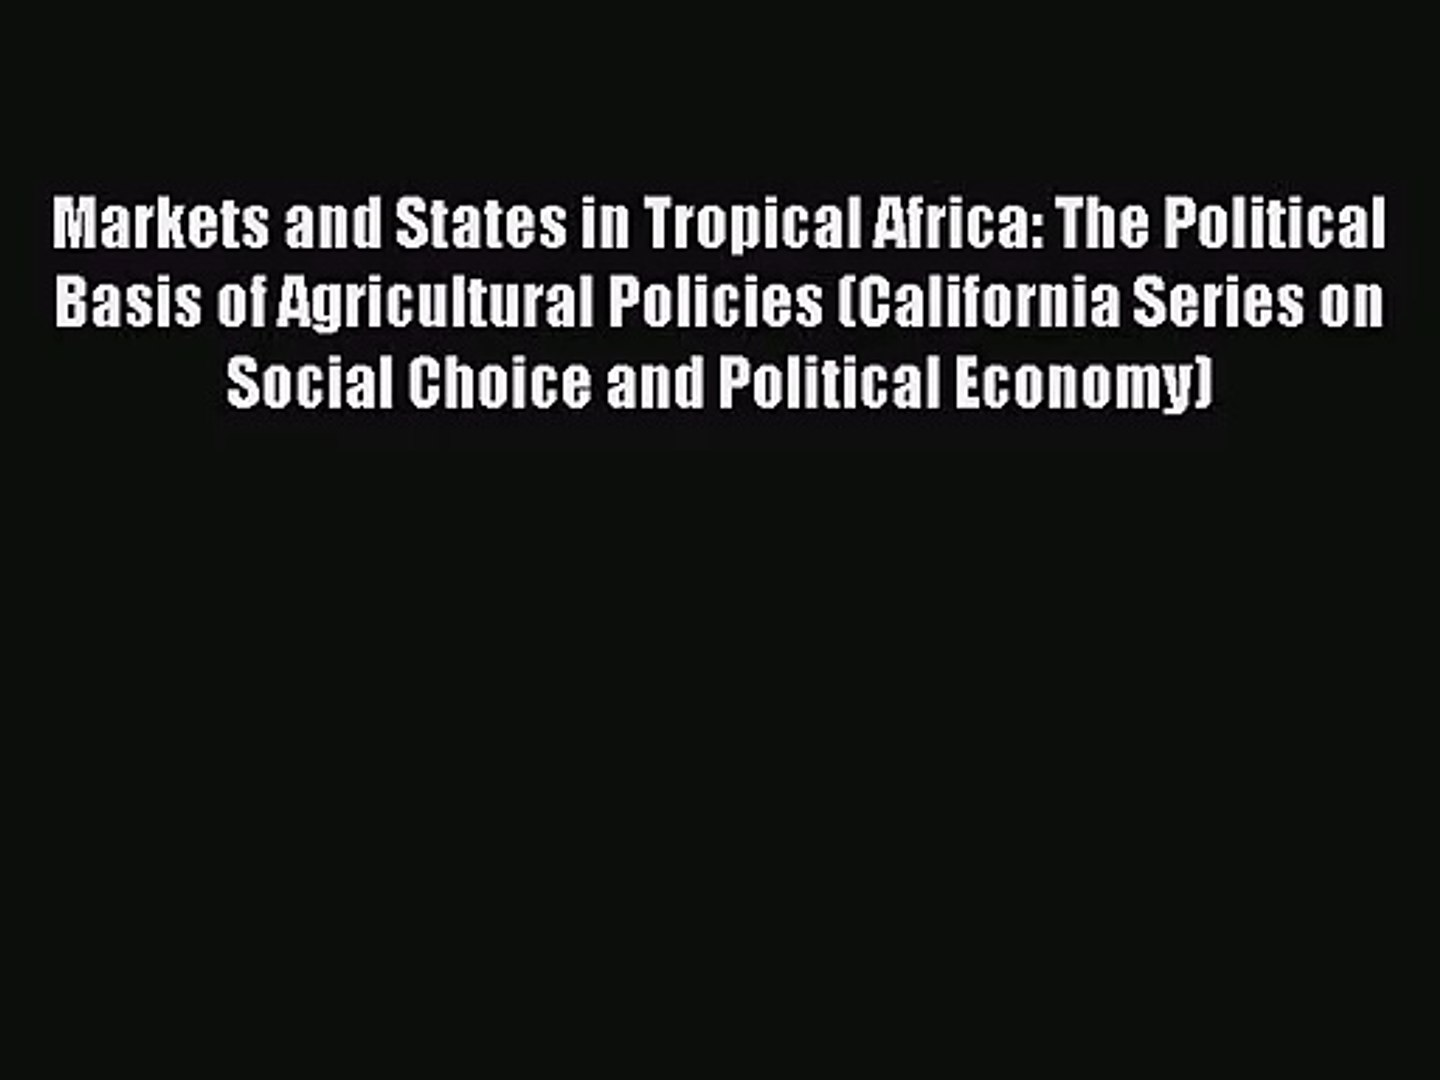 Read Markets and States in Tropical Africa: The Political Basis of Agricultural Policies (California